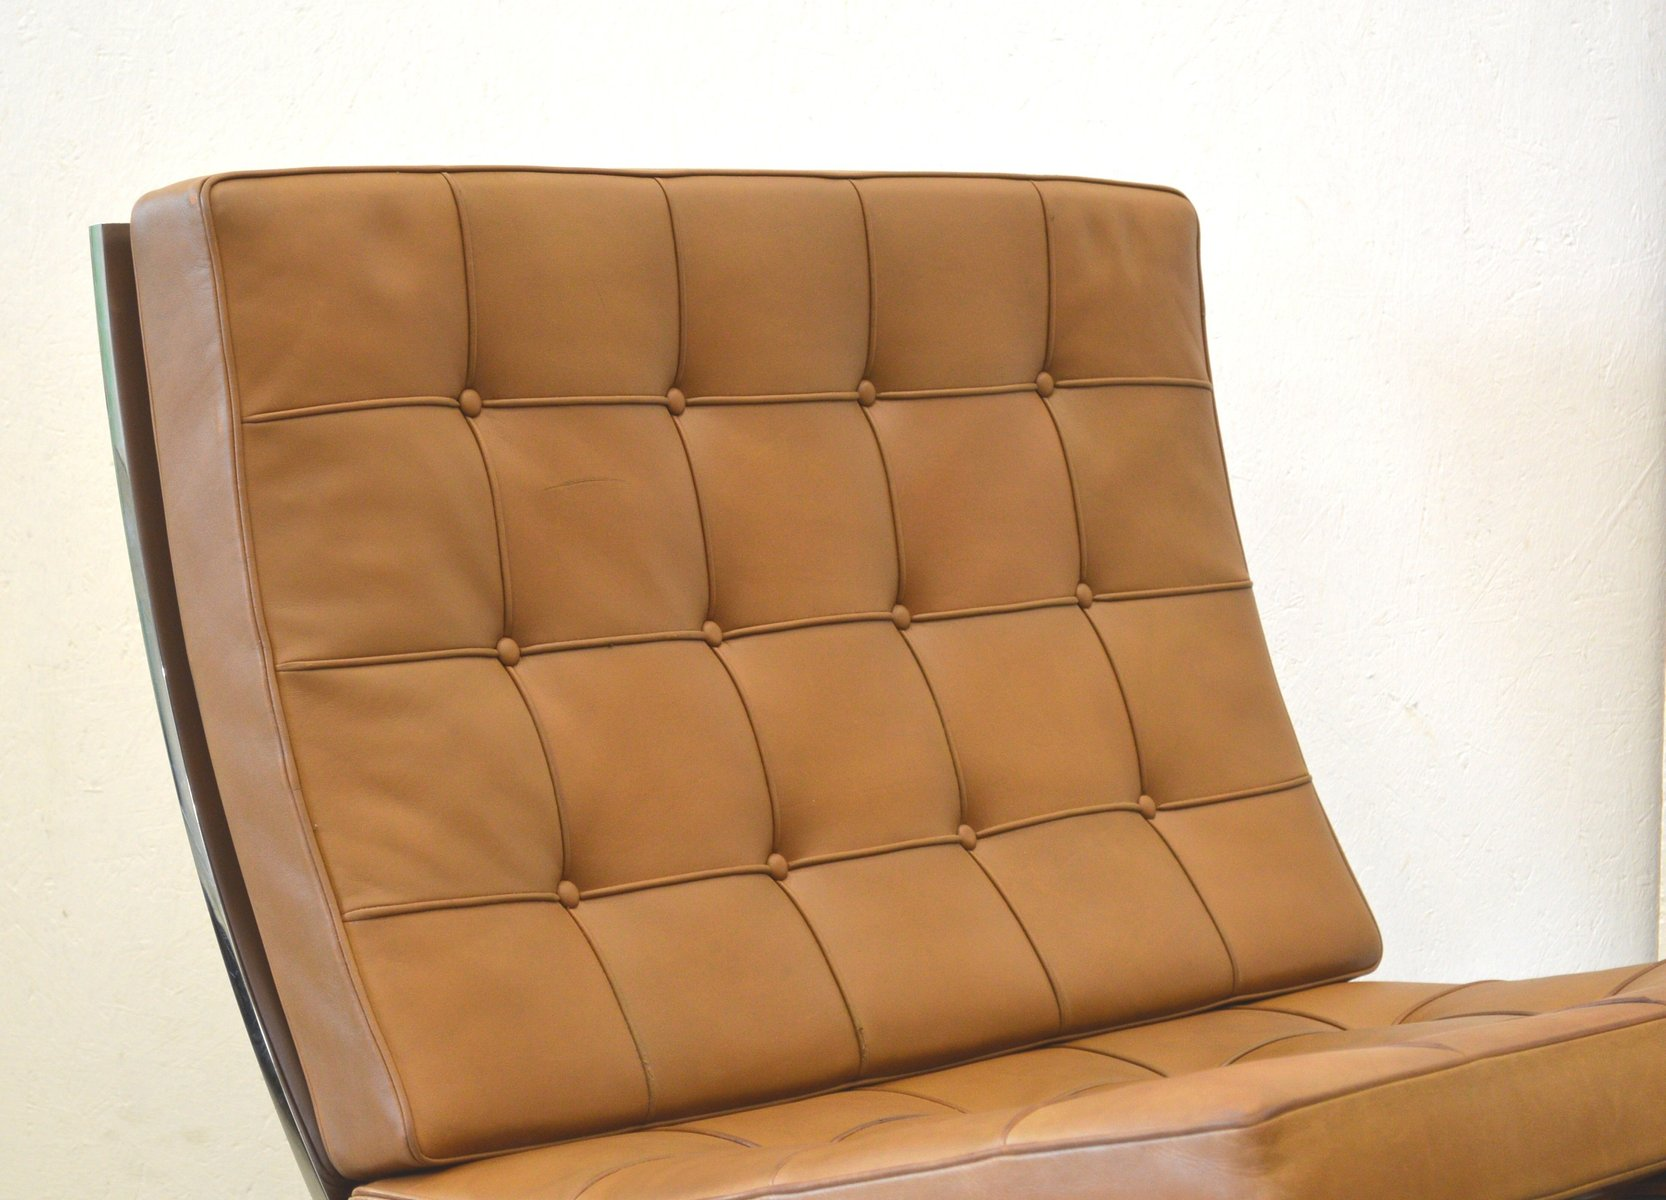 Barcelona chair brown - Vintage Barcelona Chair Ottoman By Mies Van Der Rohe For Knoll International 1960s